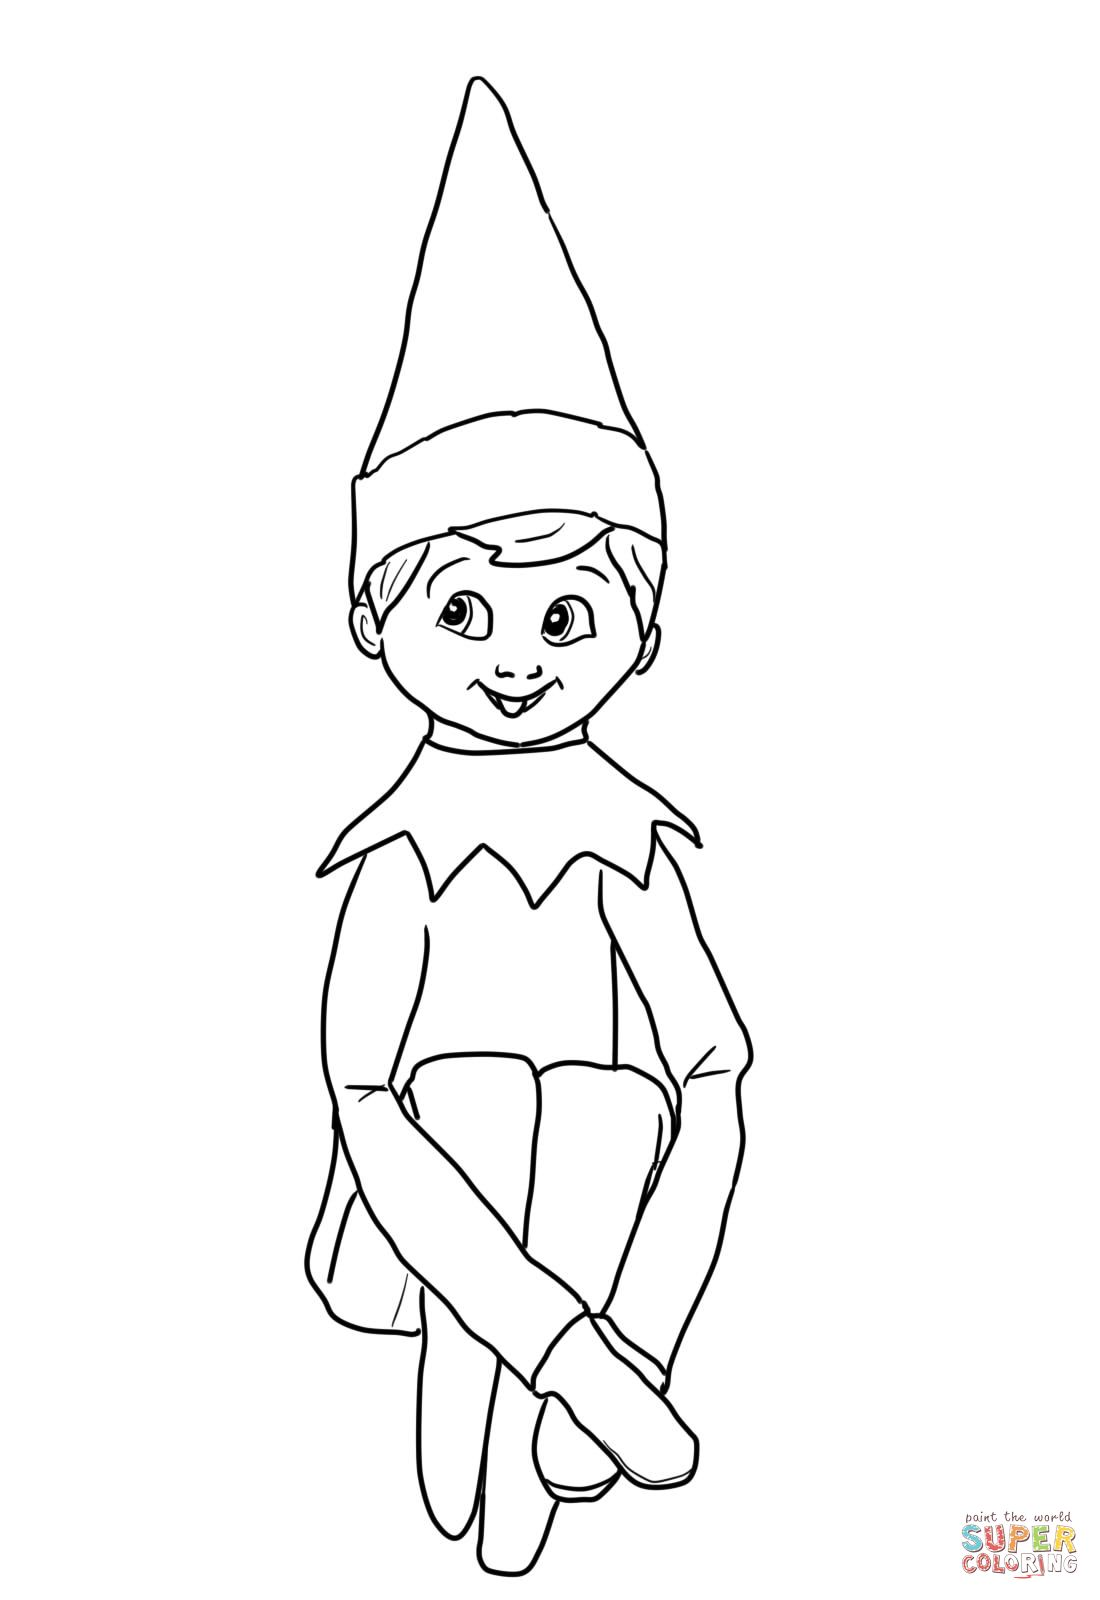 Girl Elf On the Shelf Coloring Pages You might also be interested